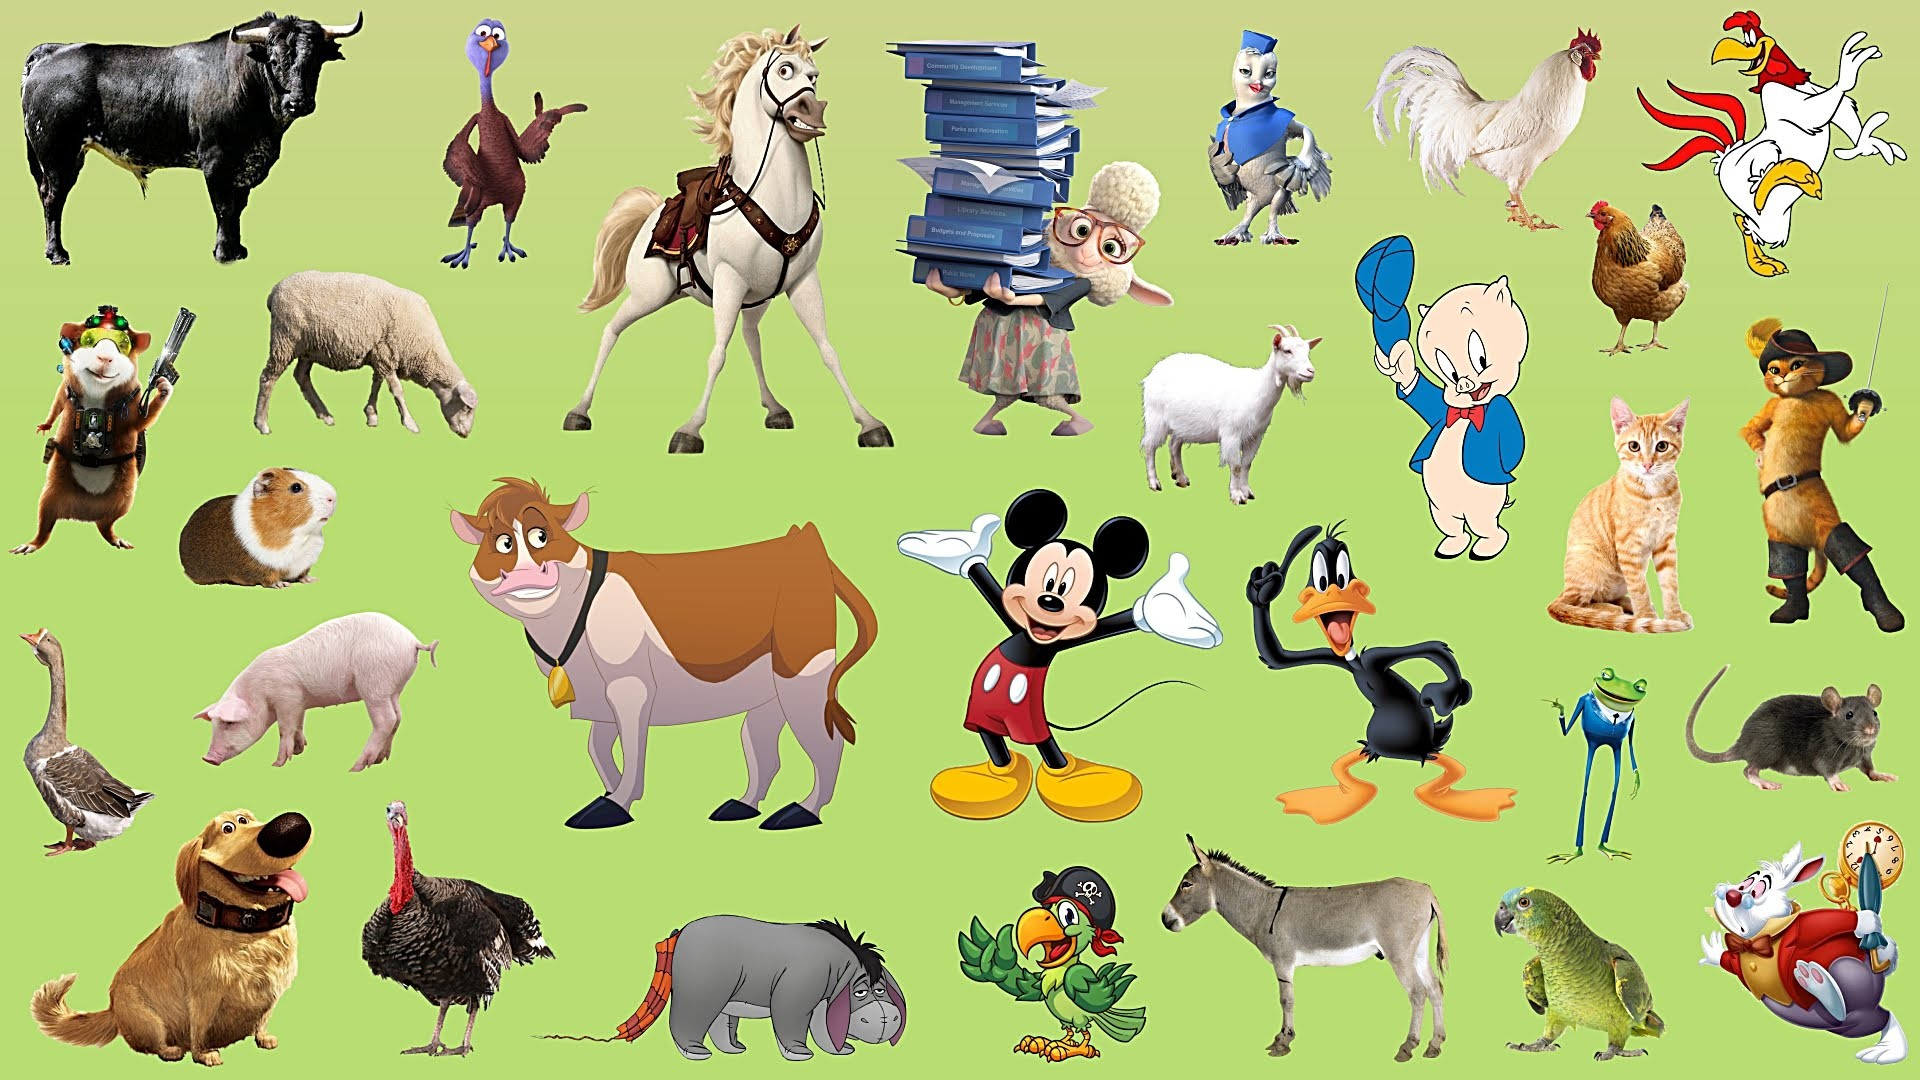 Animal cartoon characters images